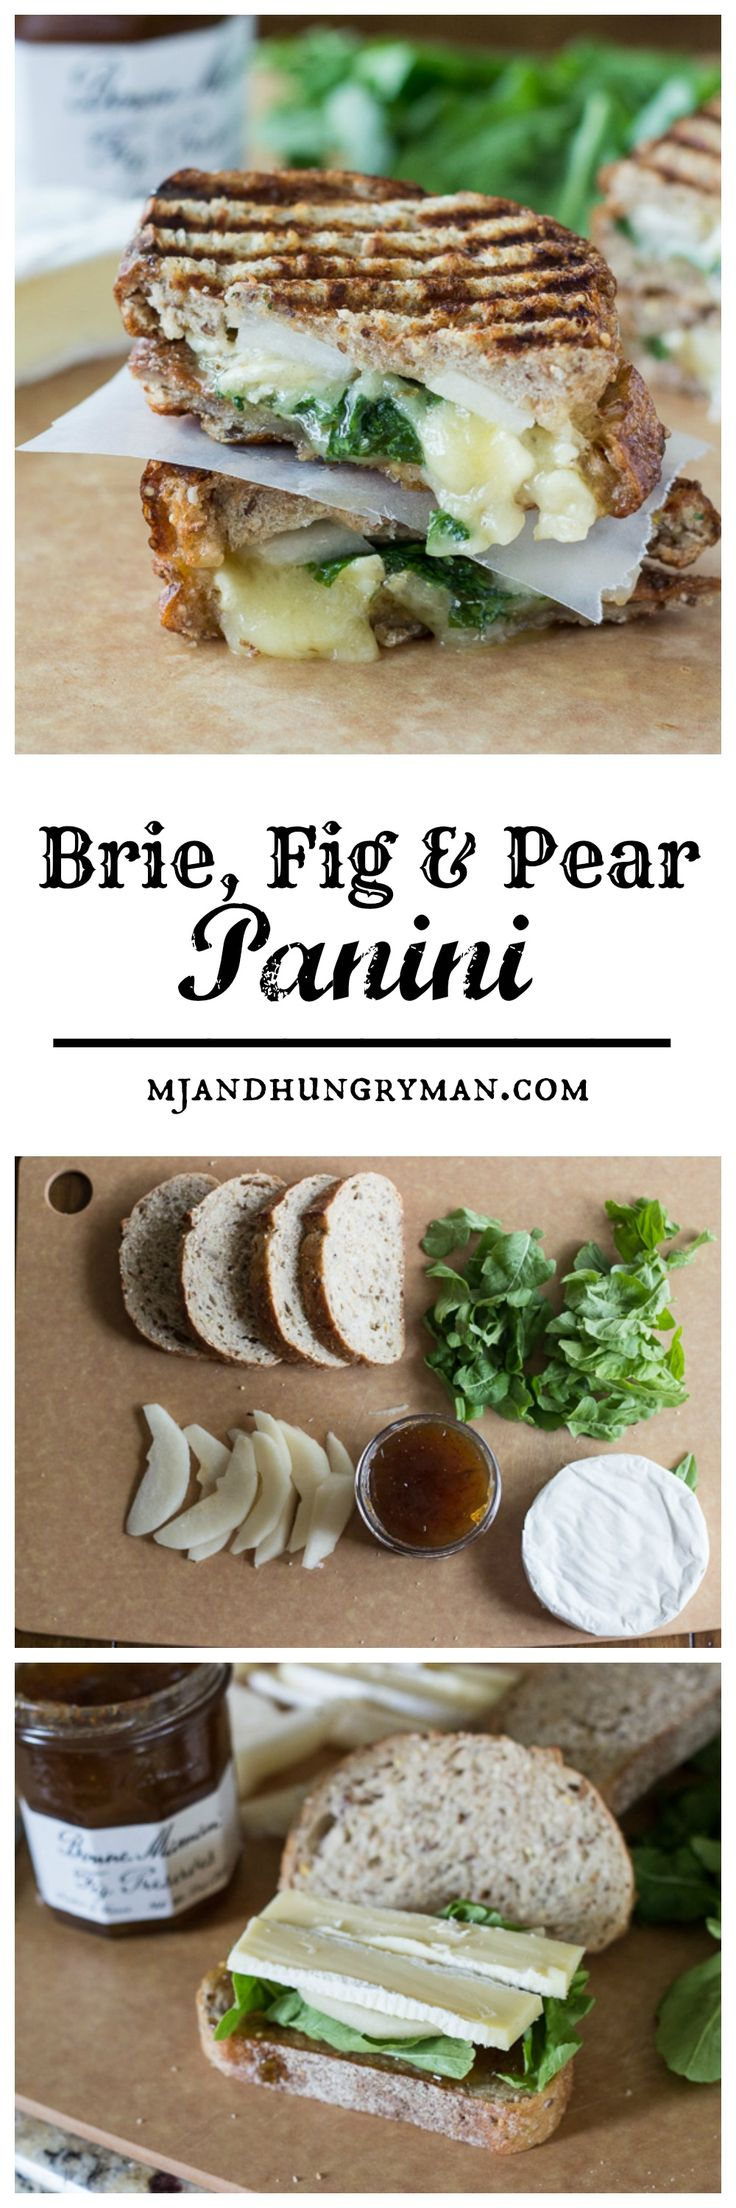 Brie, Fig and Pear Panini // The Adventures of MJ and Hungryman